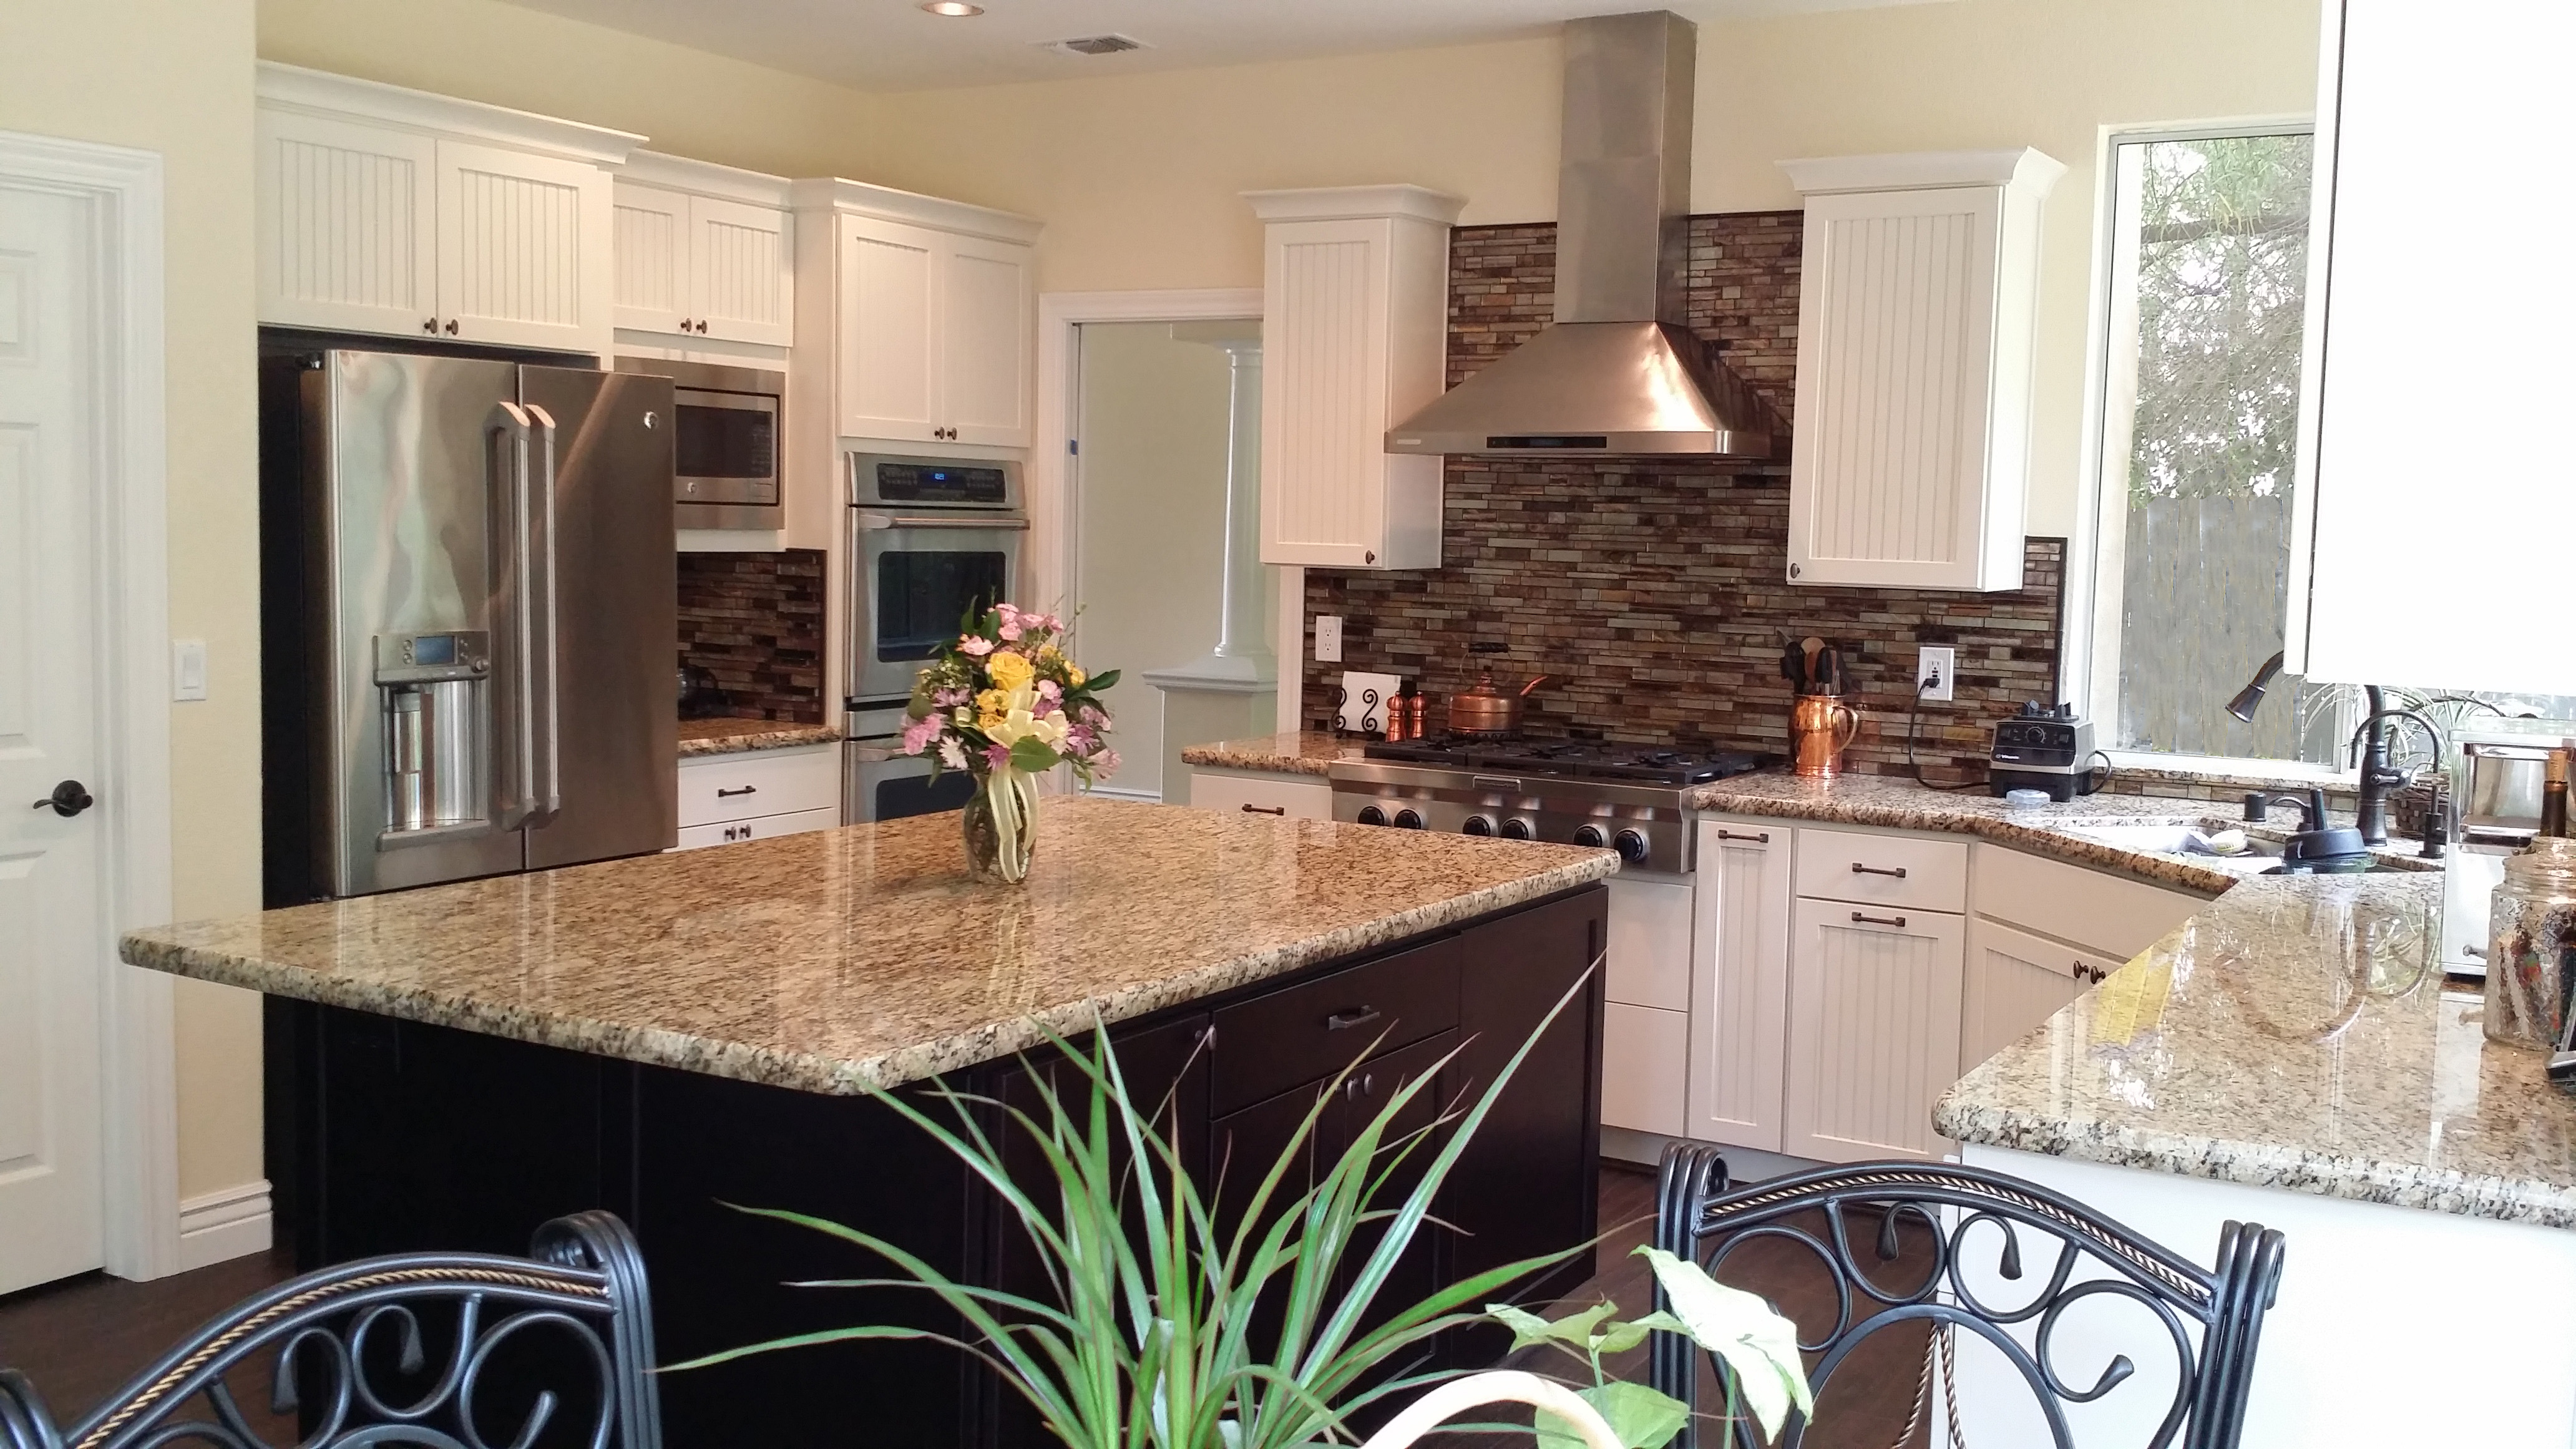 Black kitchen island with granite counter, white cabinets in background.